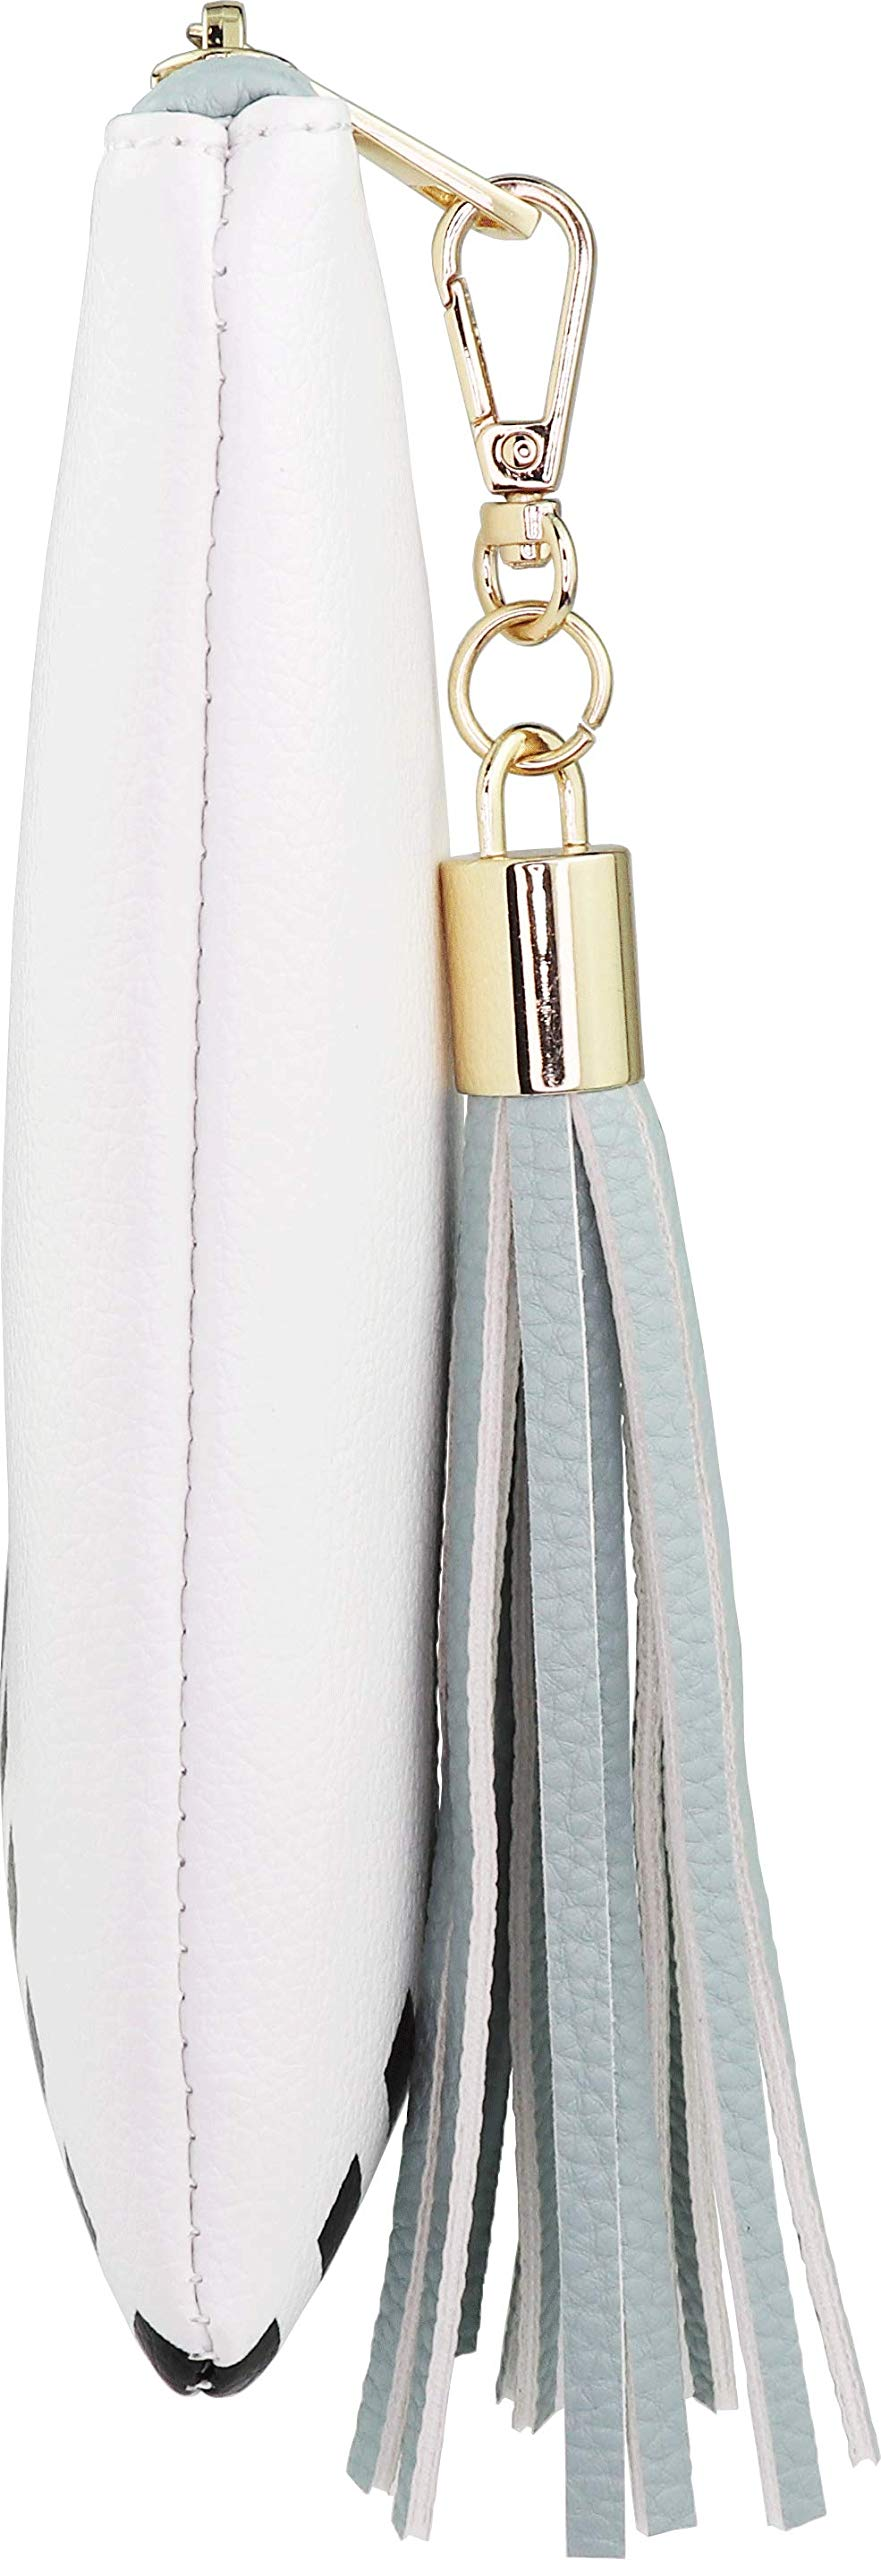 B BRENTANO Vegan Clutch Bag Pouch with Tassel Accent (Spearmint) by B BRENTANO (Image #3)